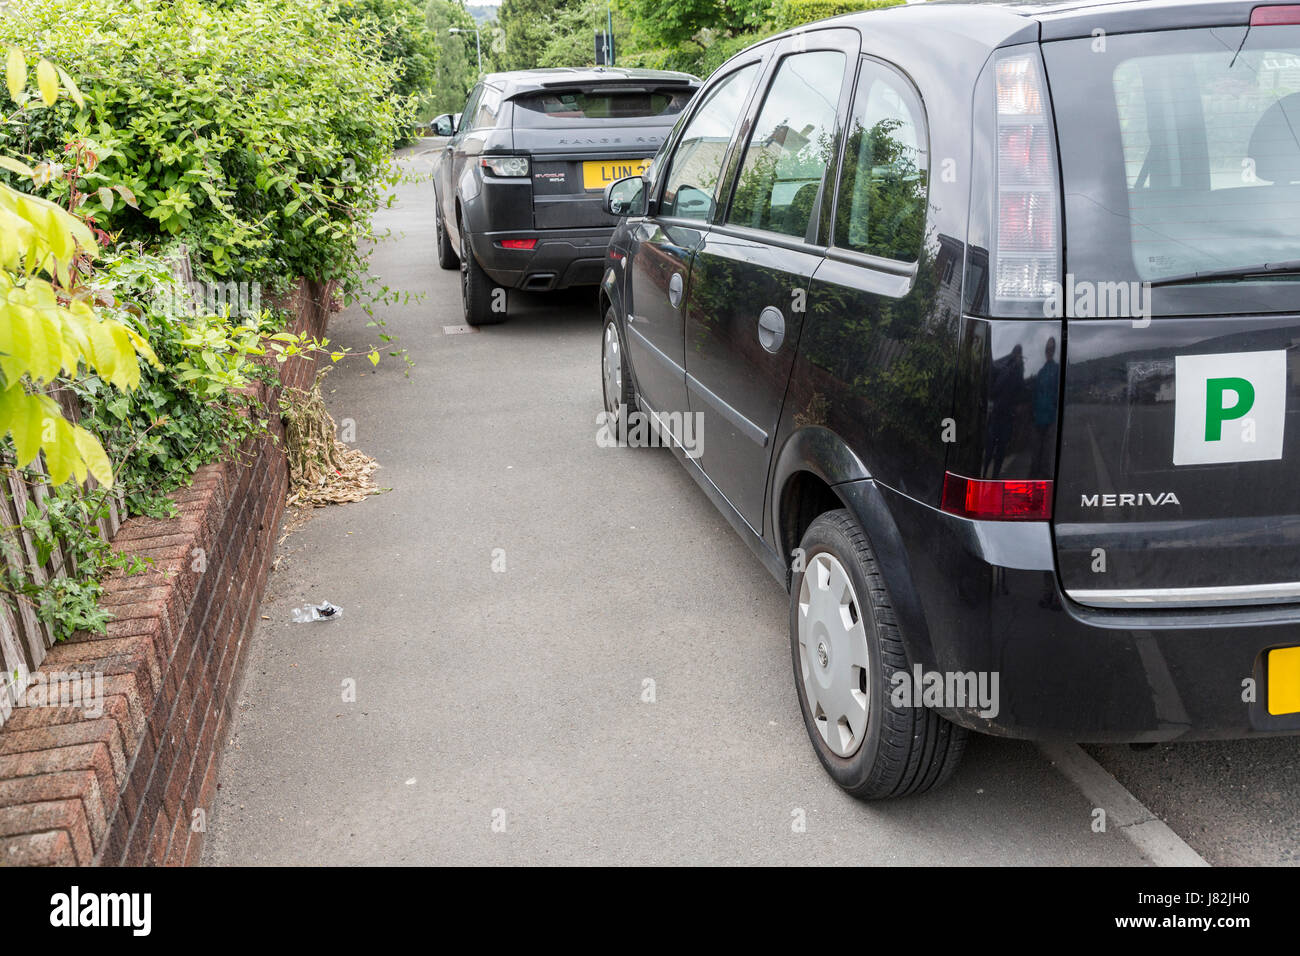 Cars parked on pavement obstructing pedestrian access, Wales, UK - Stock Image